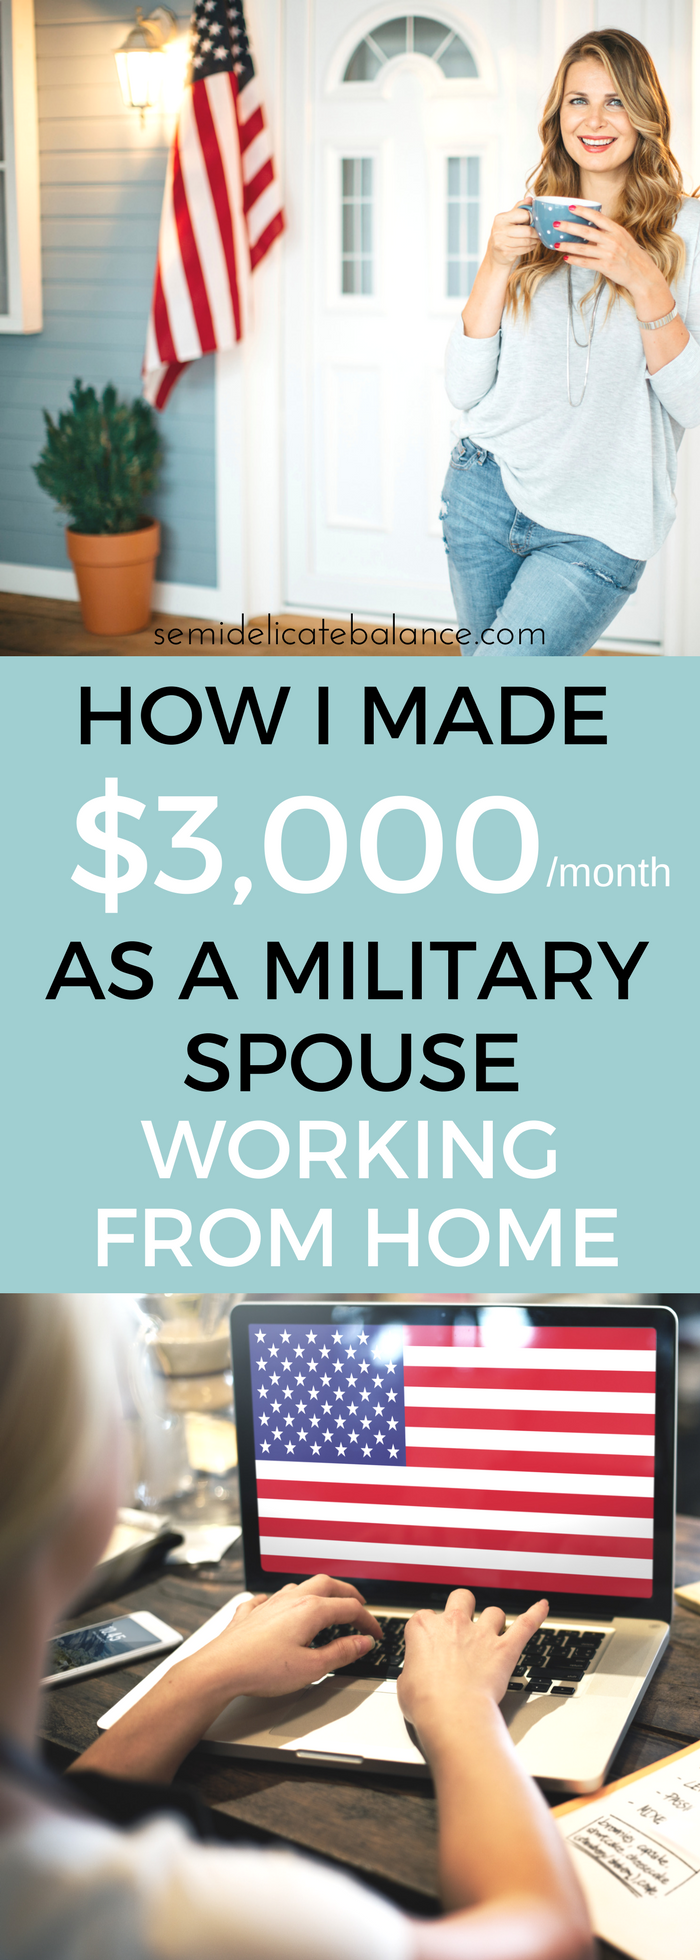 How I Made $3000 As A Military Spouse Working From Home, Legit ways to make money as a stay at home military wife